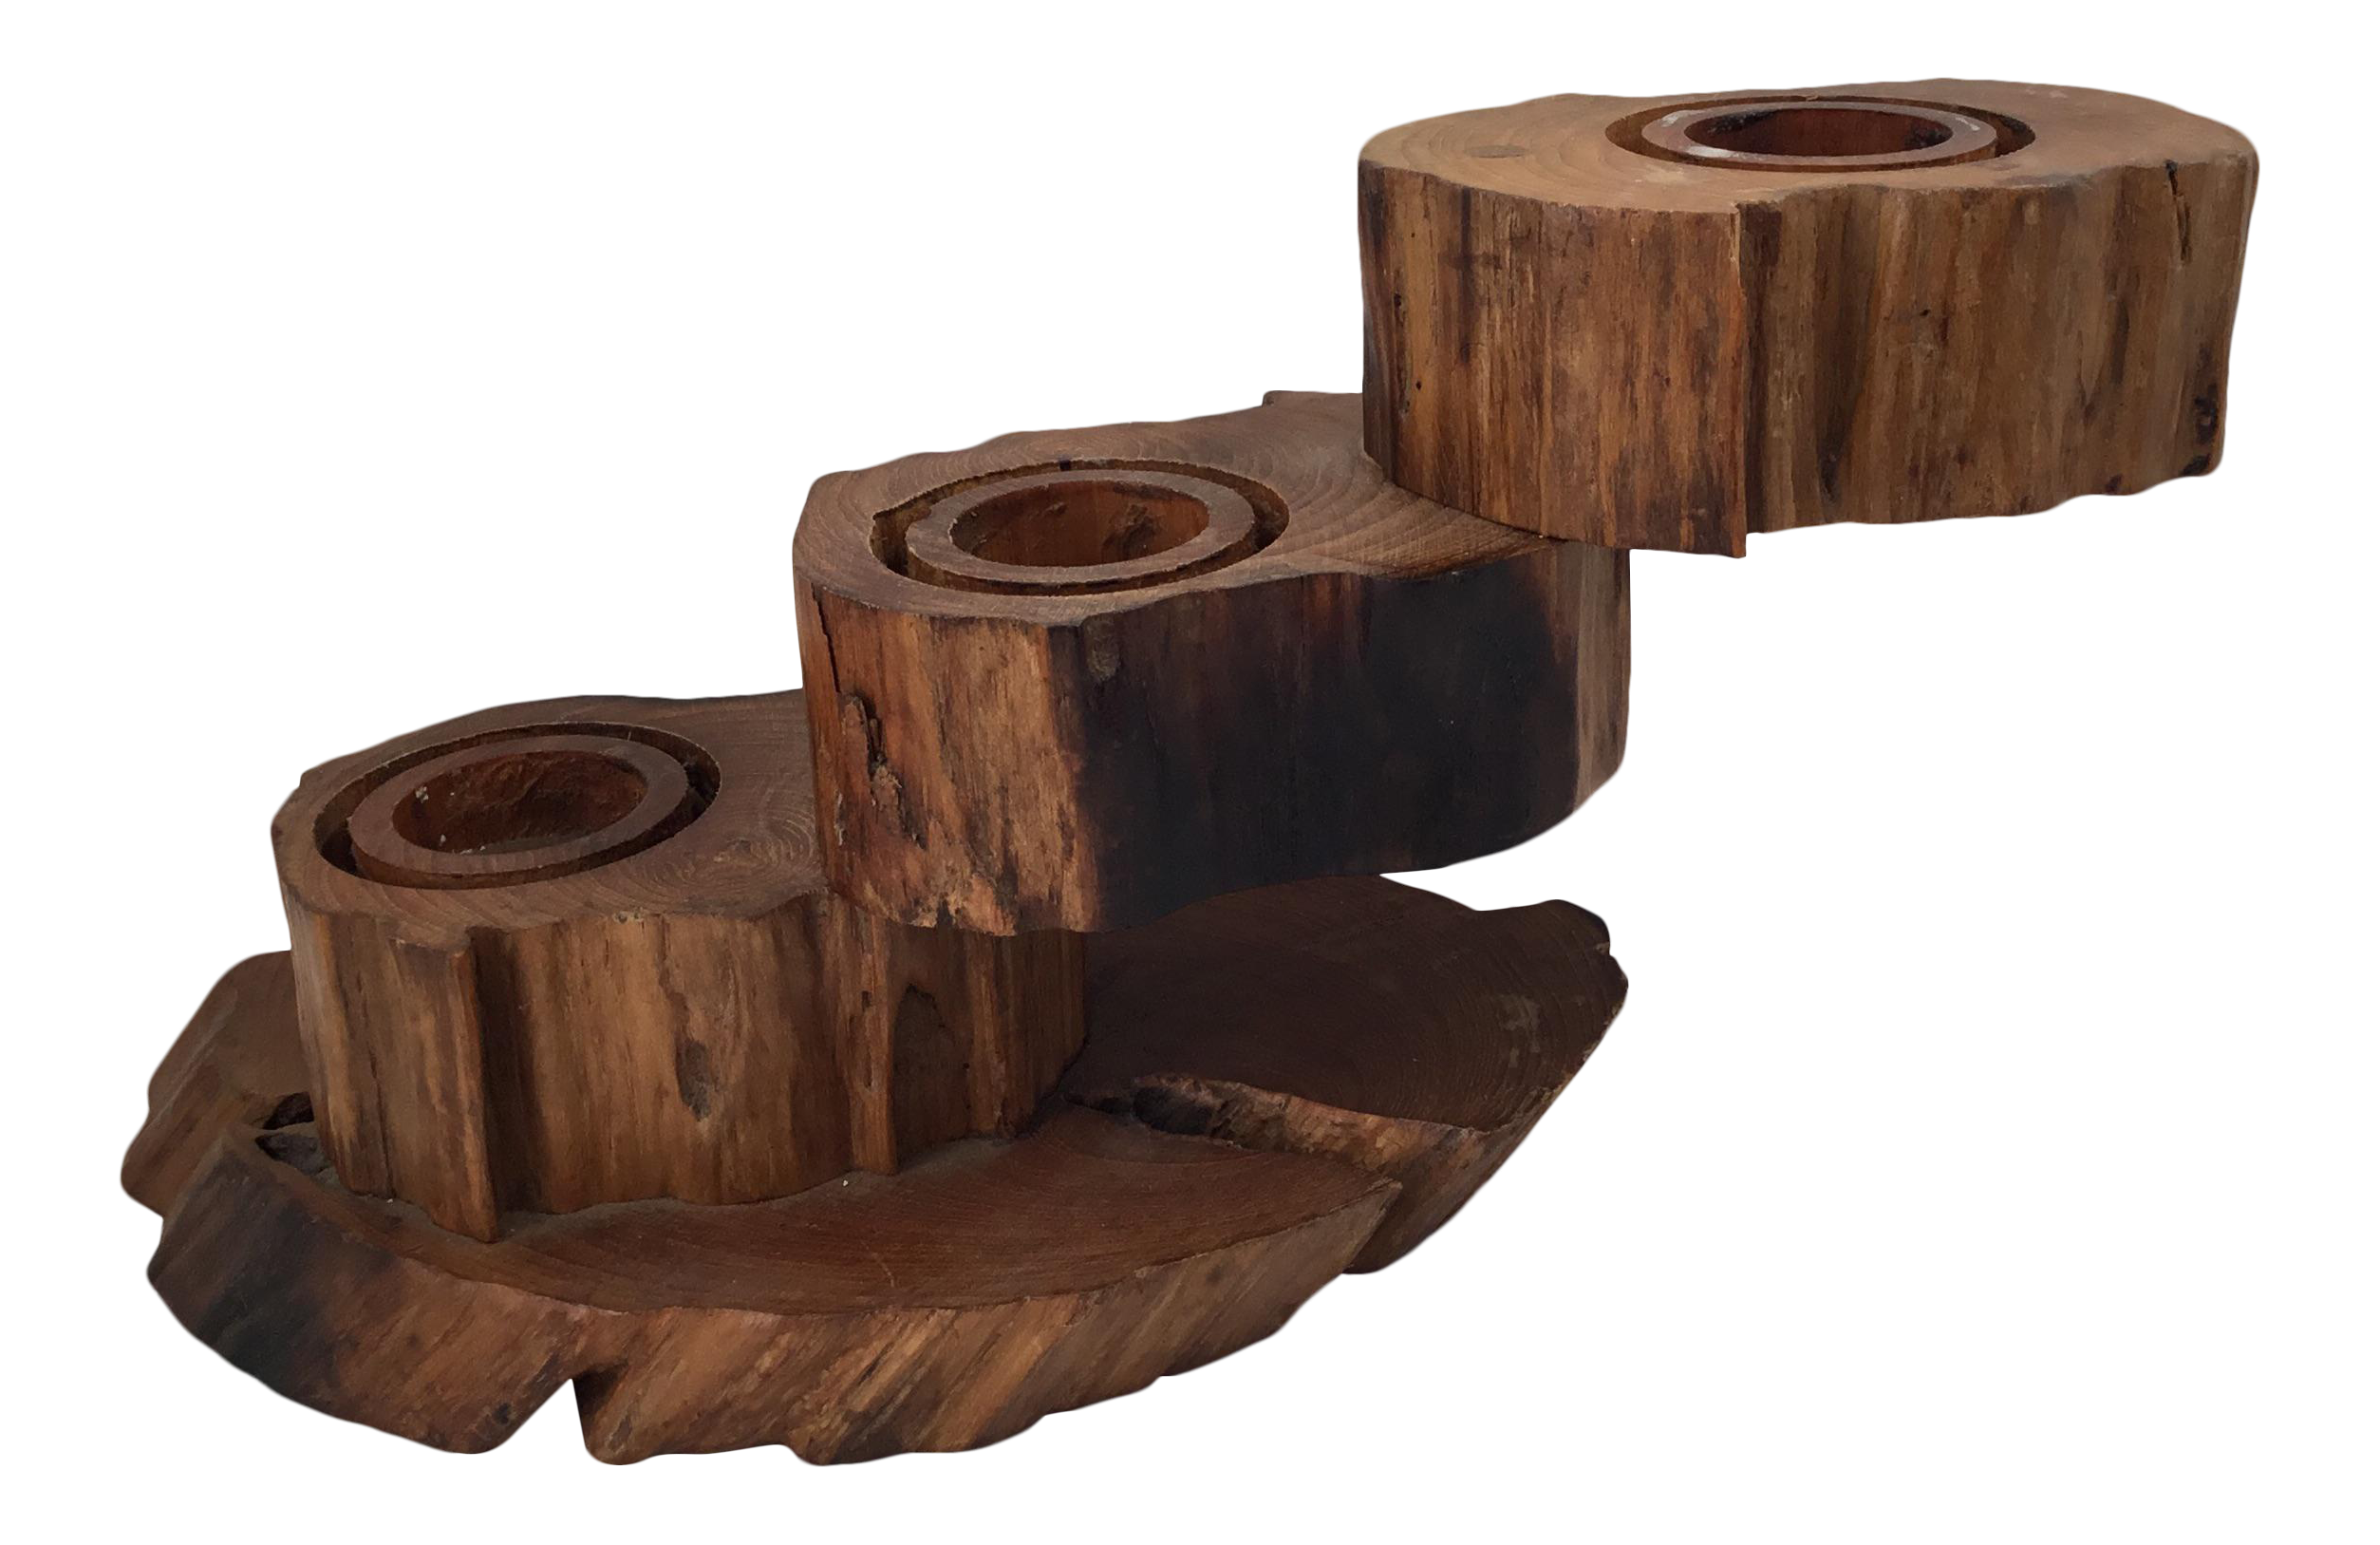 three tiered wooden candle holder chairish With kitchen cabinet trends 2018 combined with tiered candle holder